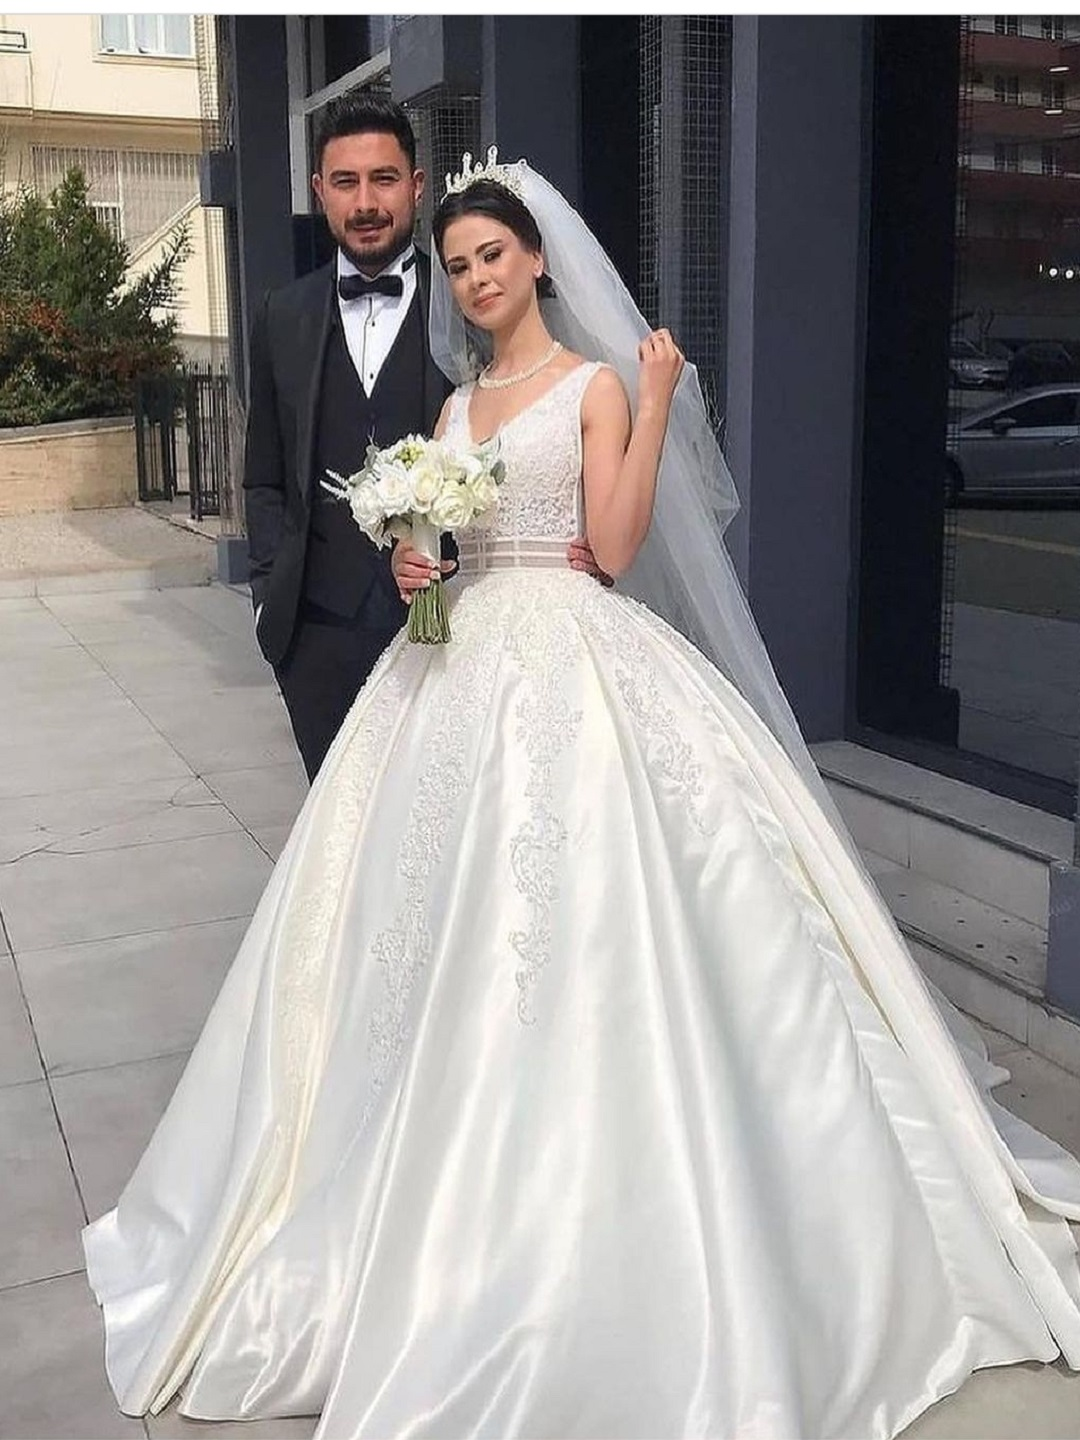 Beads Lace gown high quality wedding dress with veil , Id 20 ...